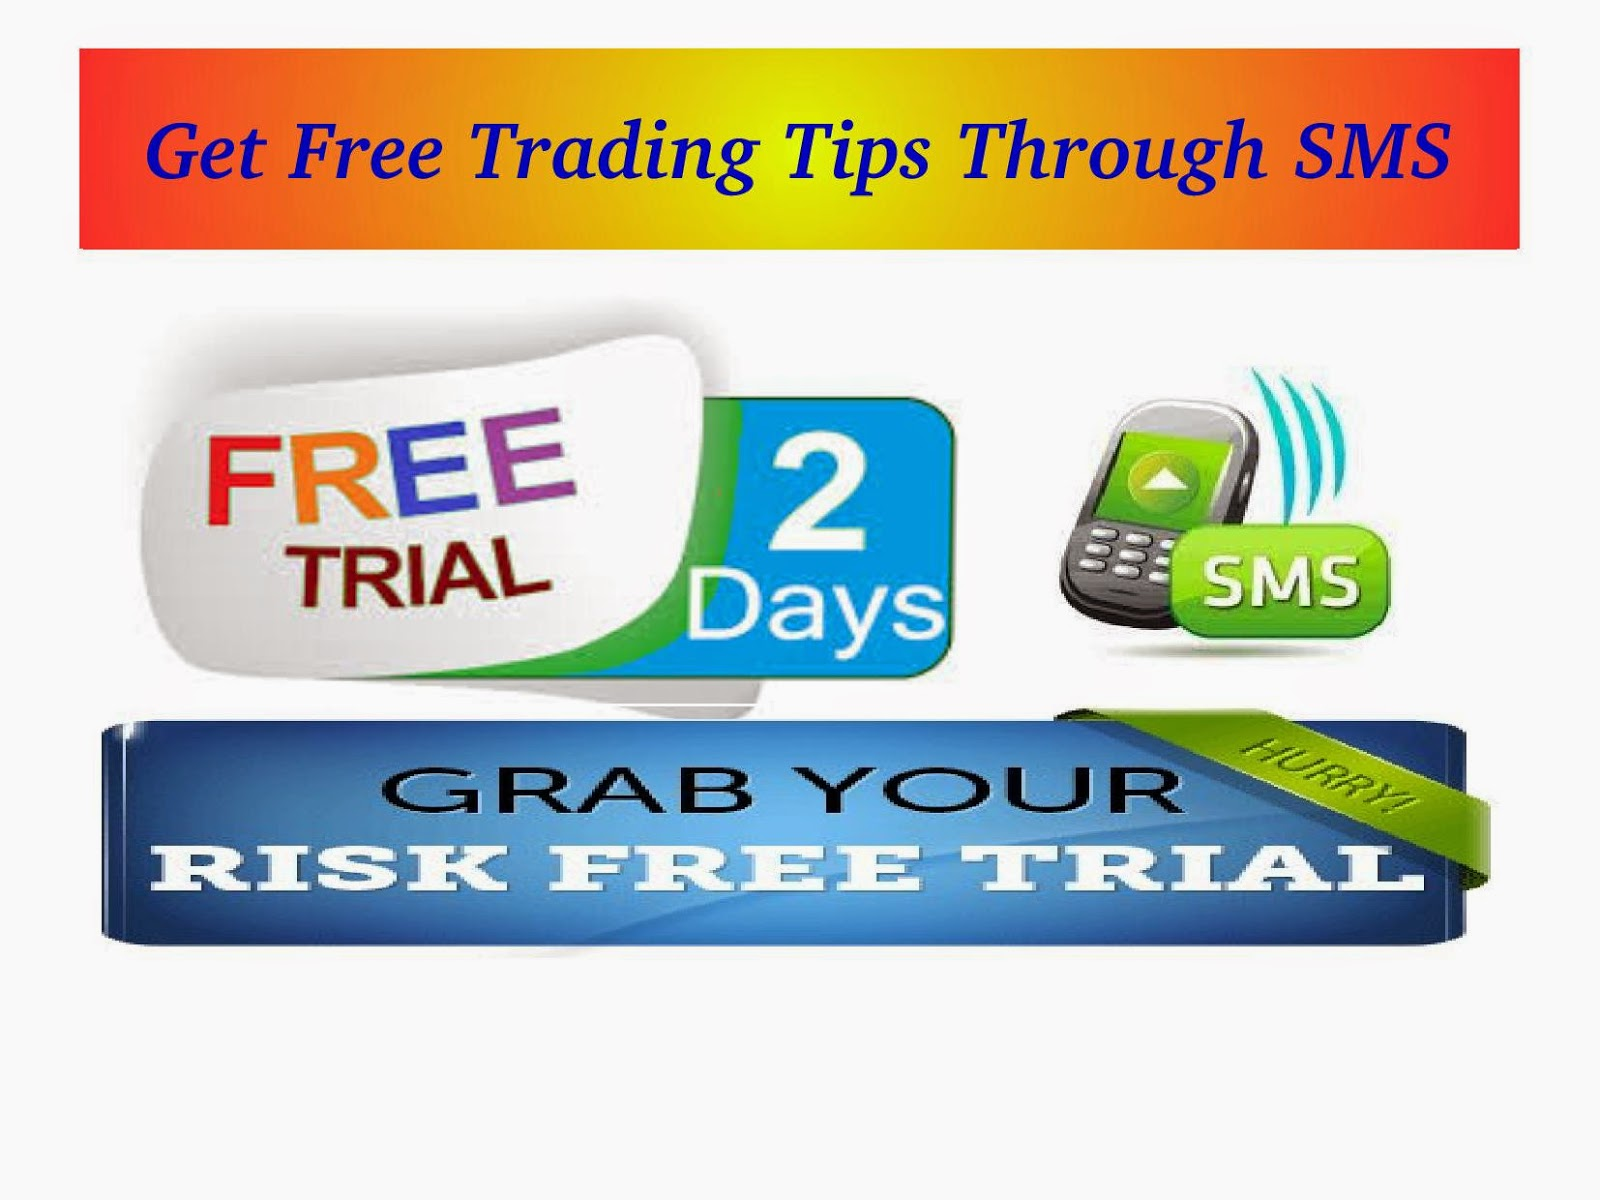 TODAY'S TRADING CALLS BY MONETARY SOLUTION INDORE | STOCK